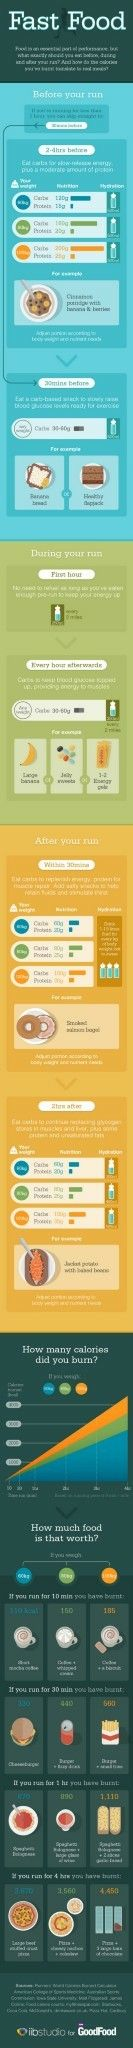 BBC Goodfood - Nutrition for runners - Infographic